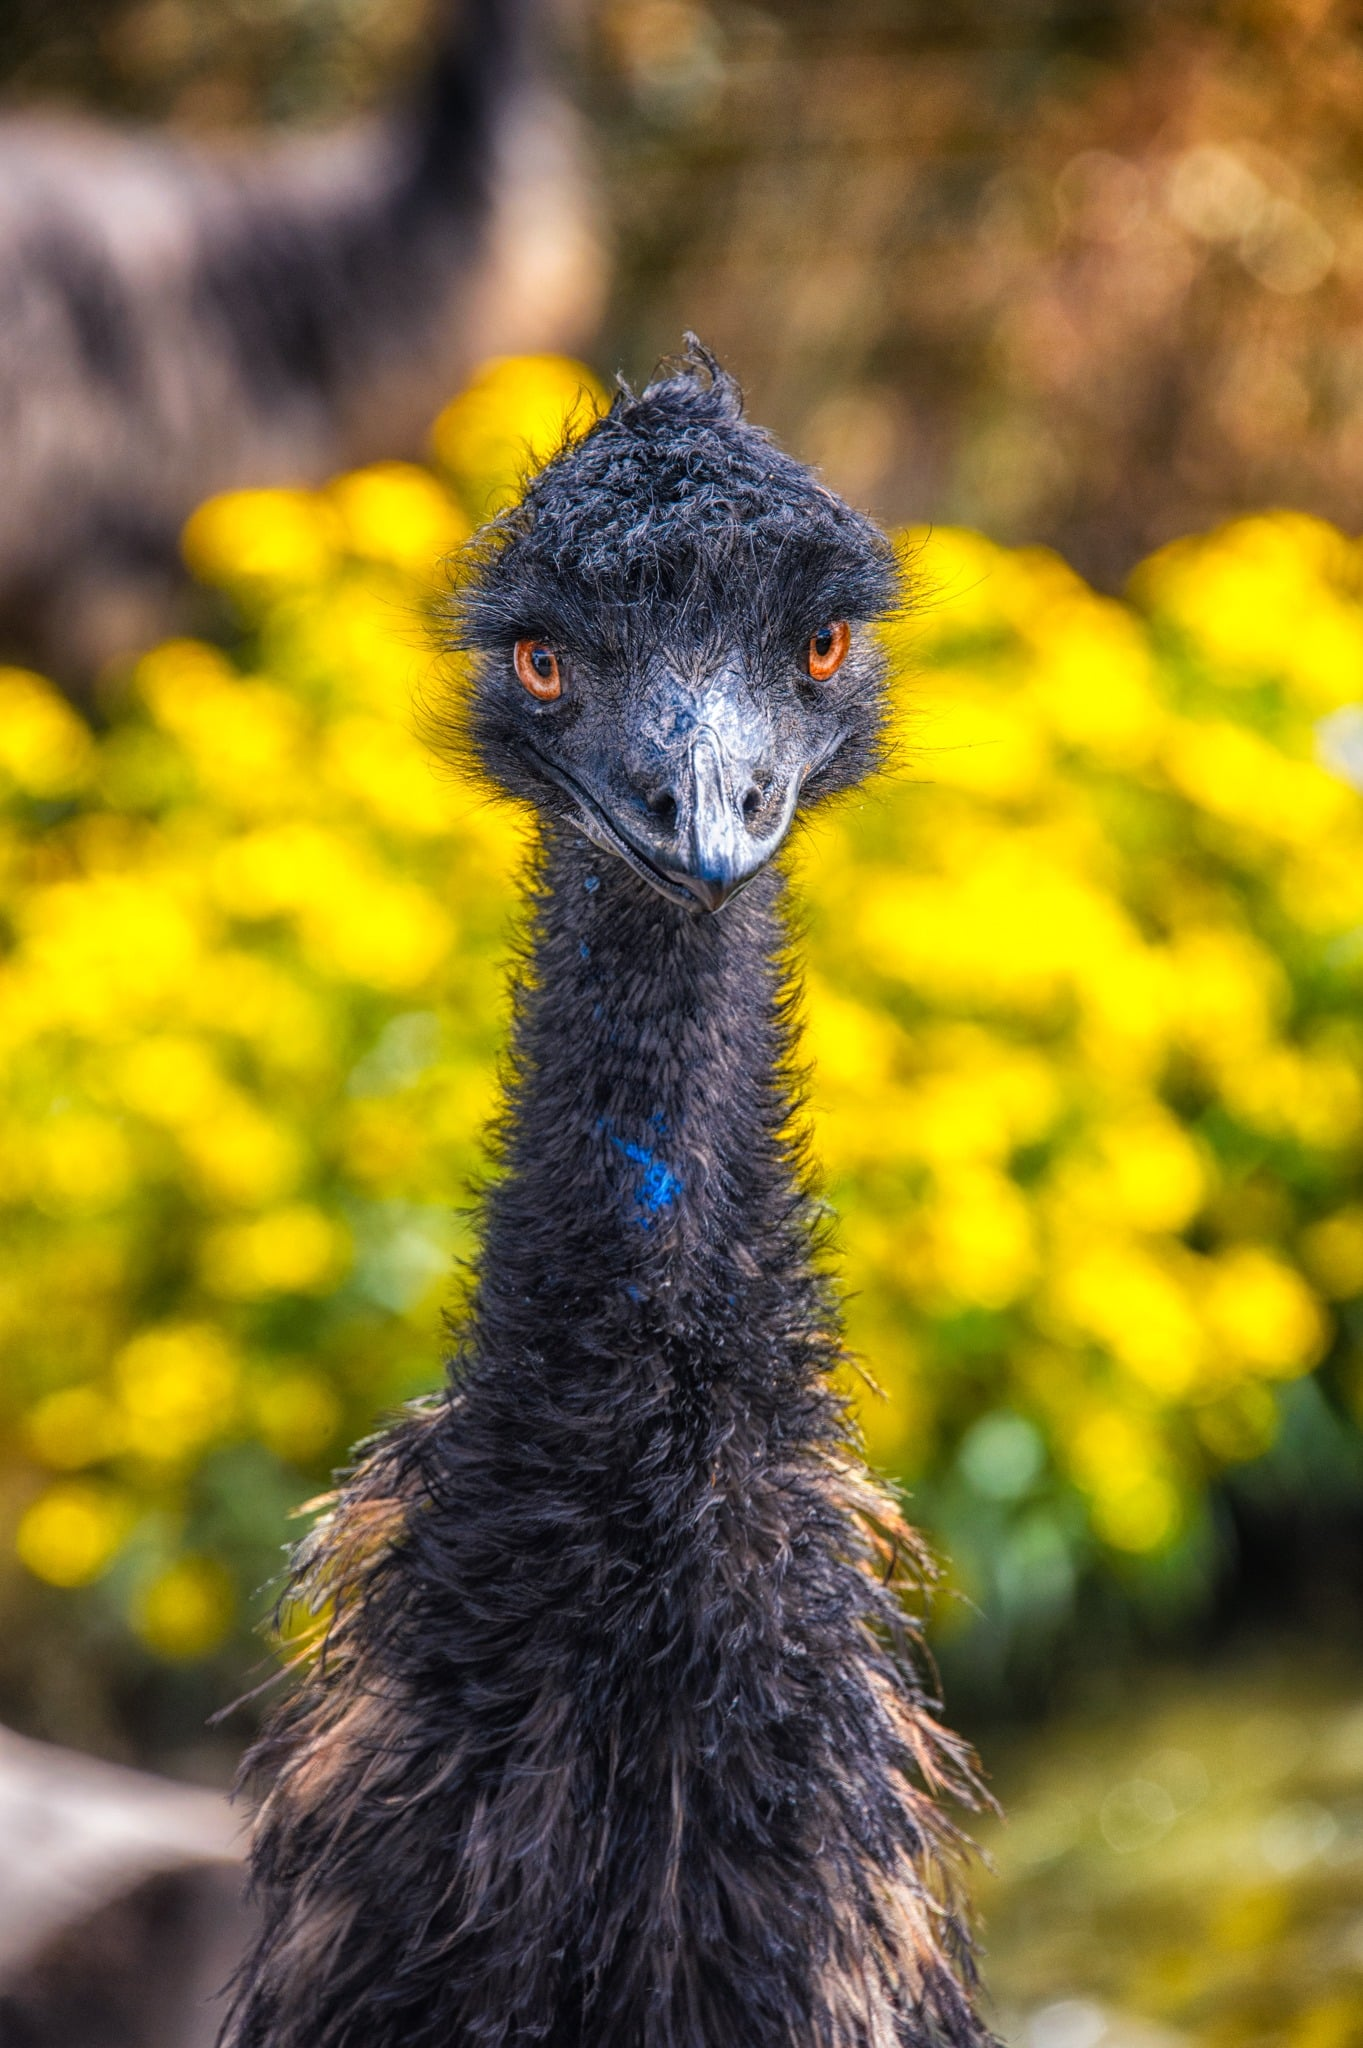 The emu is the second-largest living bird by height, after its flightless relative, the ostrich. There are several emus at the Colorado Gators rescue near Hooper, Colorado.